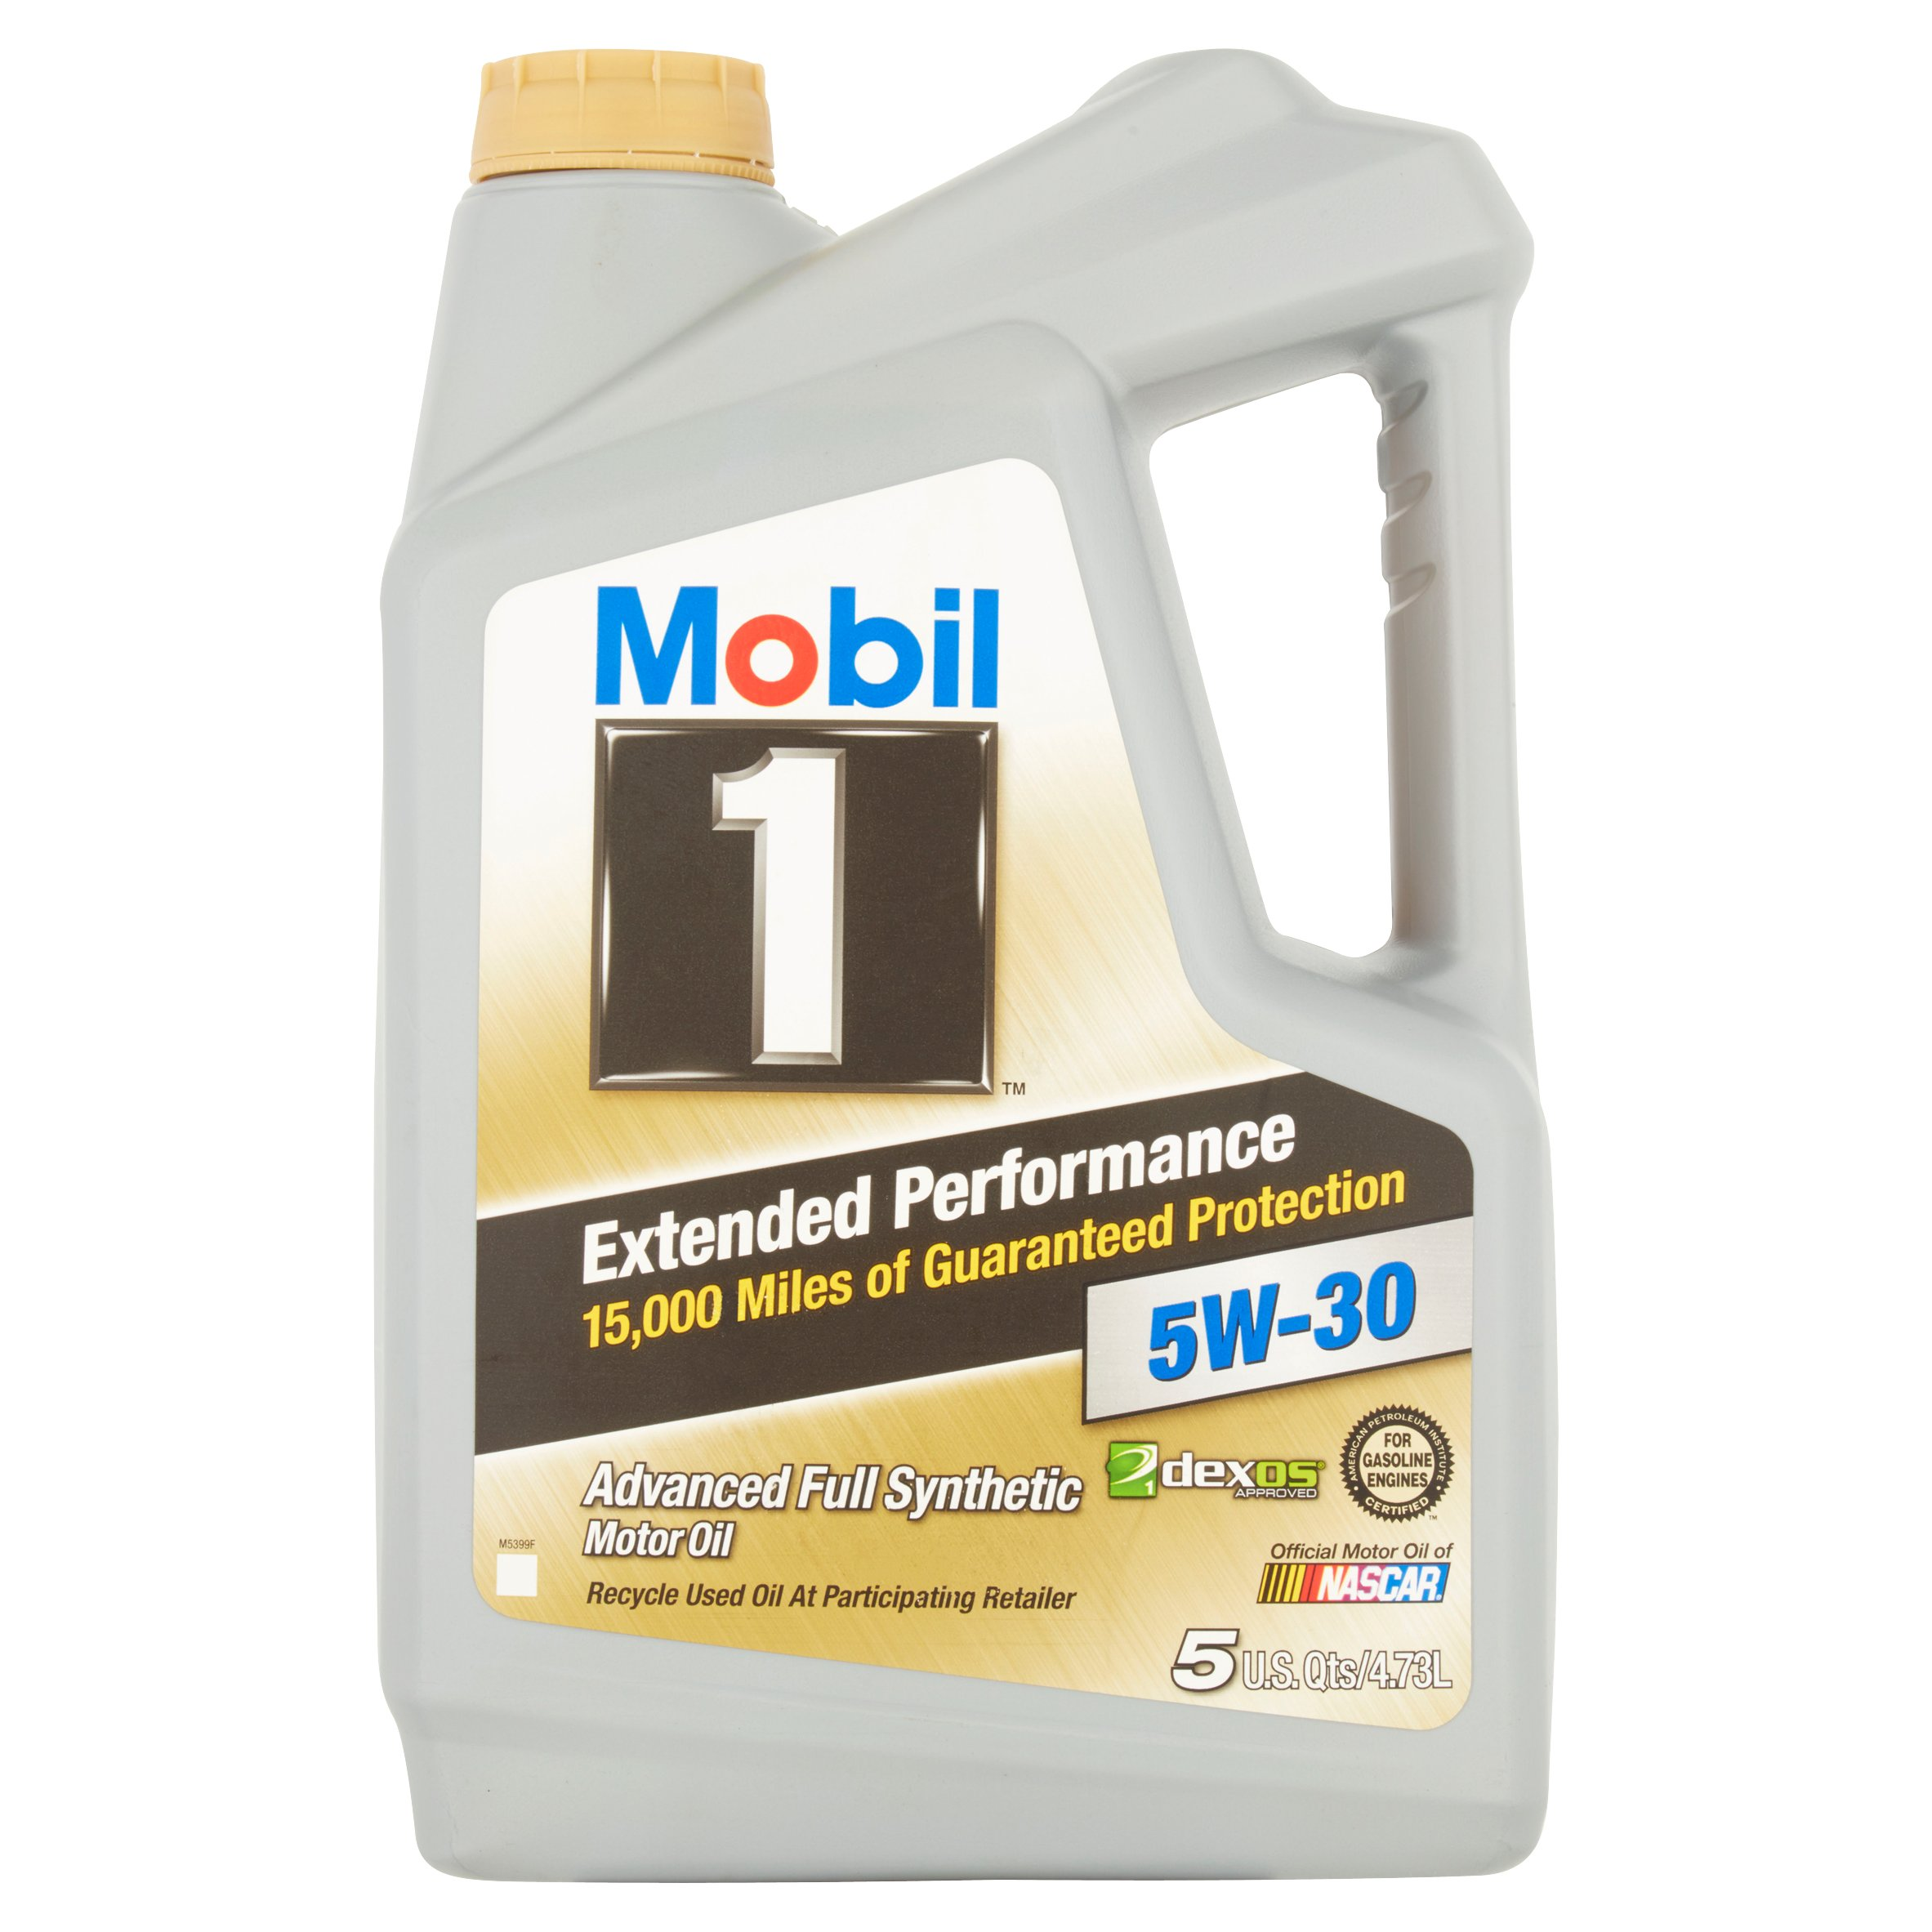 To Clean Engine Oil From Carpet